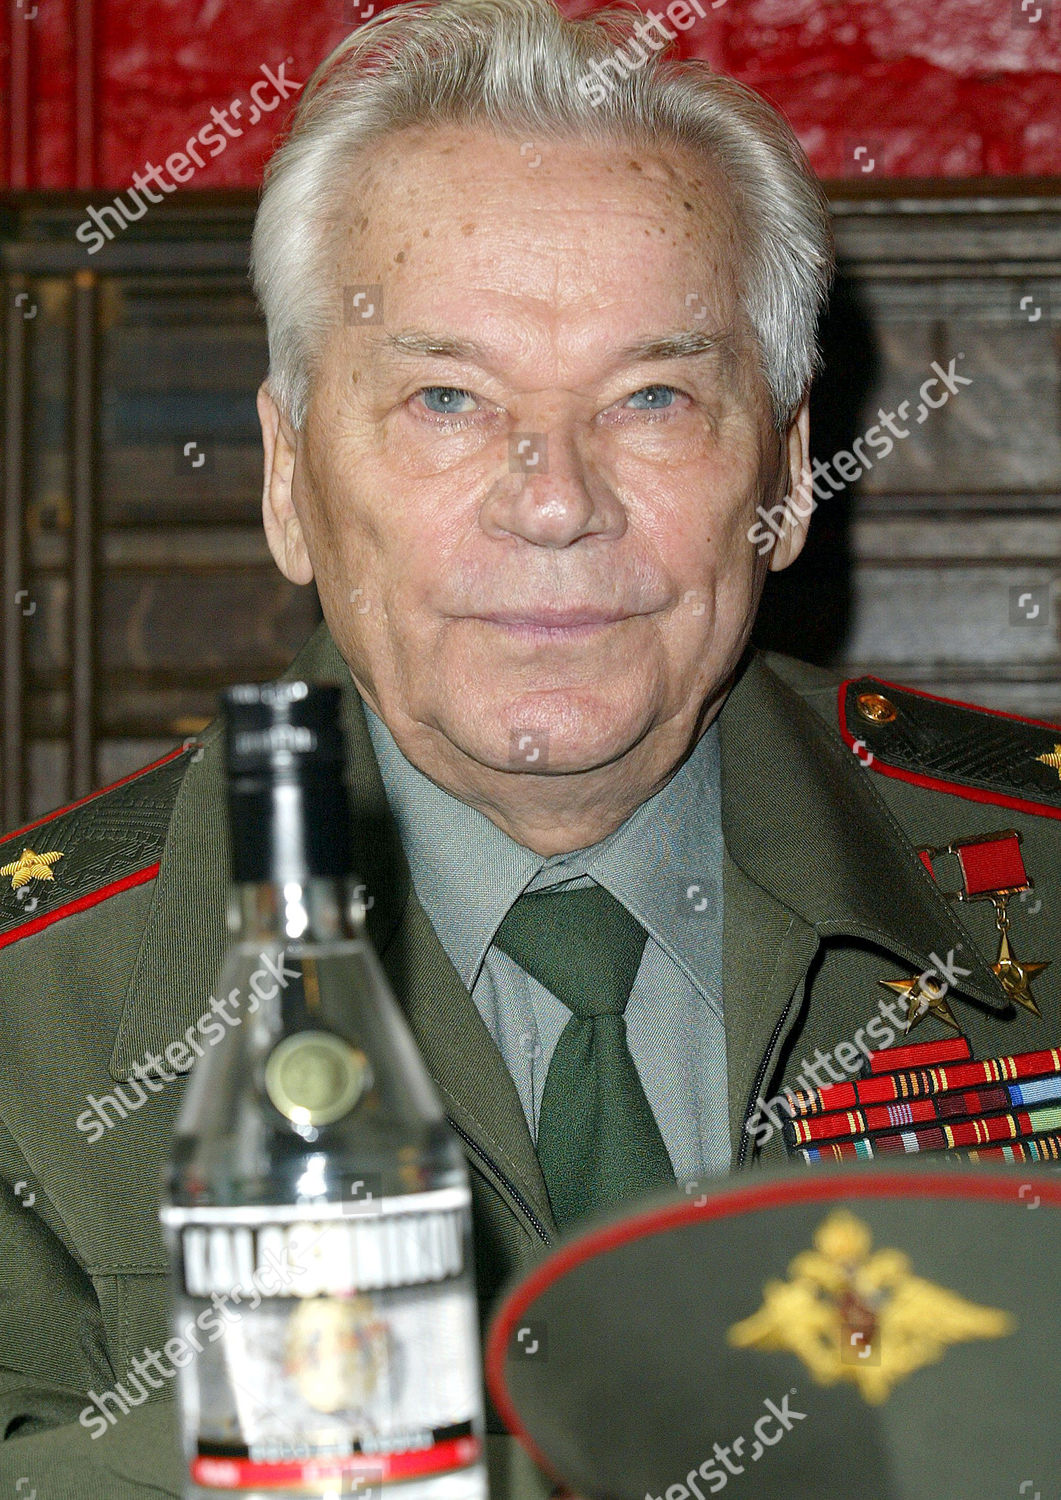 LIEUTENANT GENERAL MIKHAIL KALASHNIKOV Editorial Stock Photo